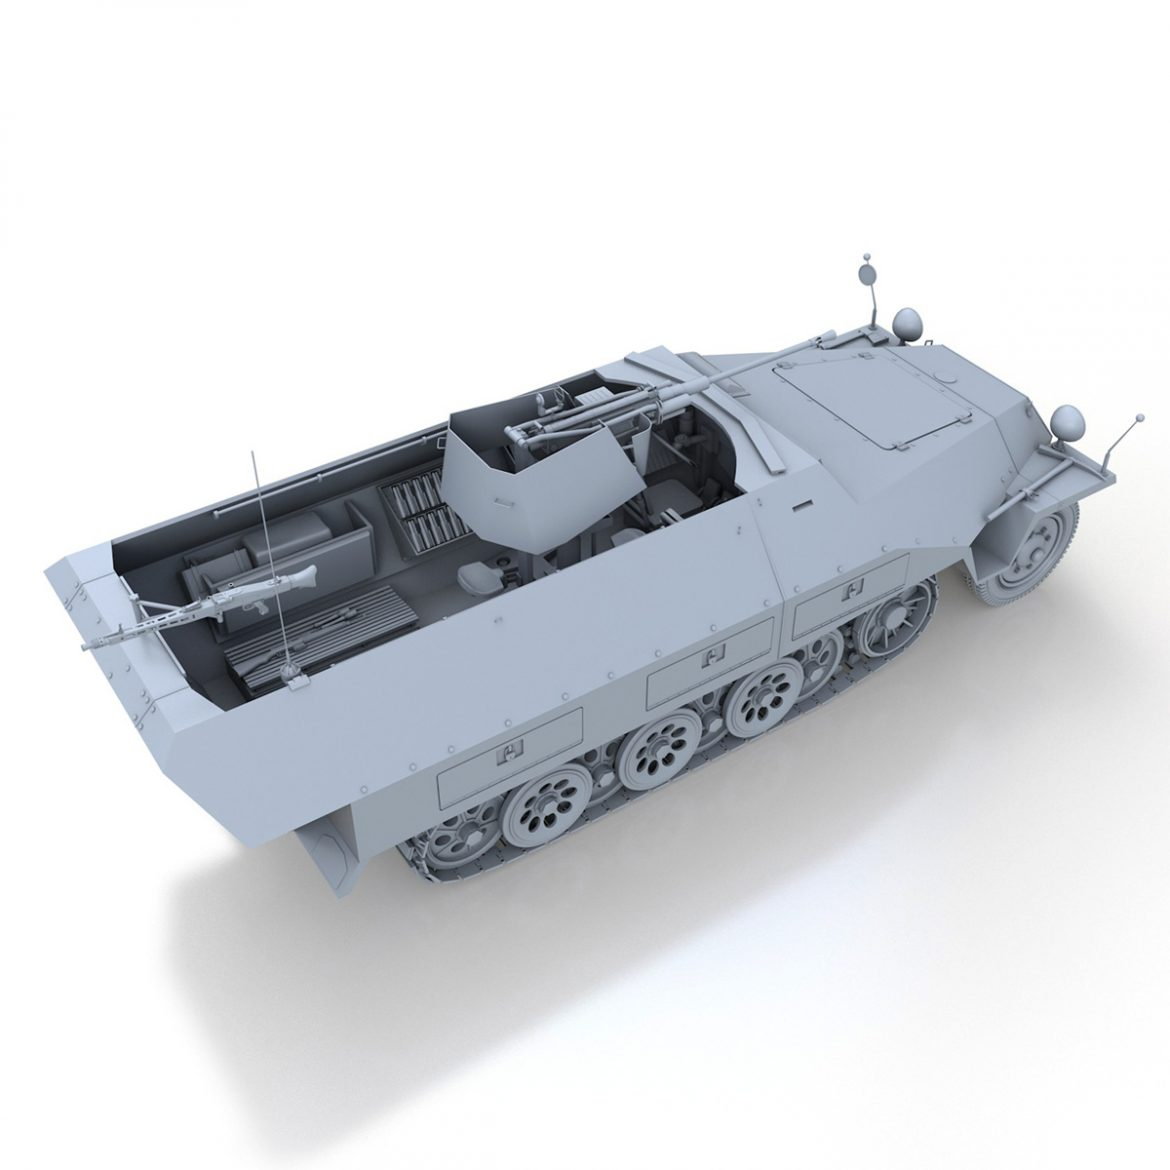 sd.kfz 251/17 ausf.d – anti-aircraft vehicle 3d model 3ds fbx c4d lwo obj 302952